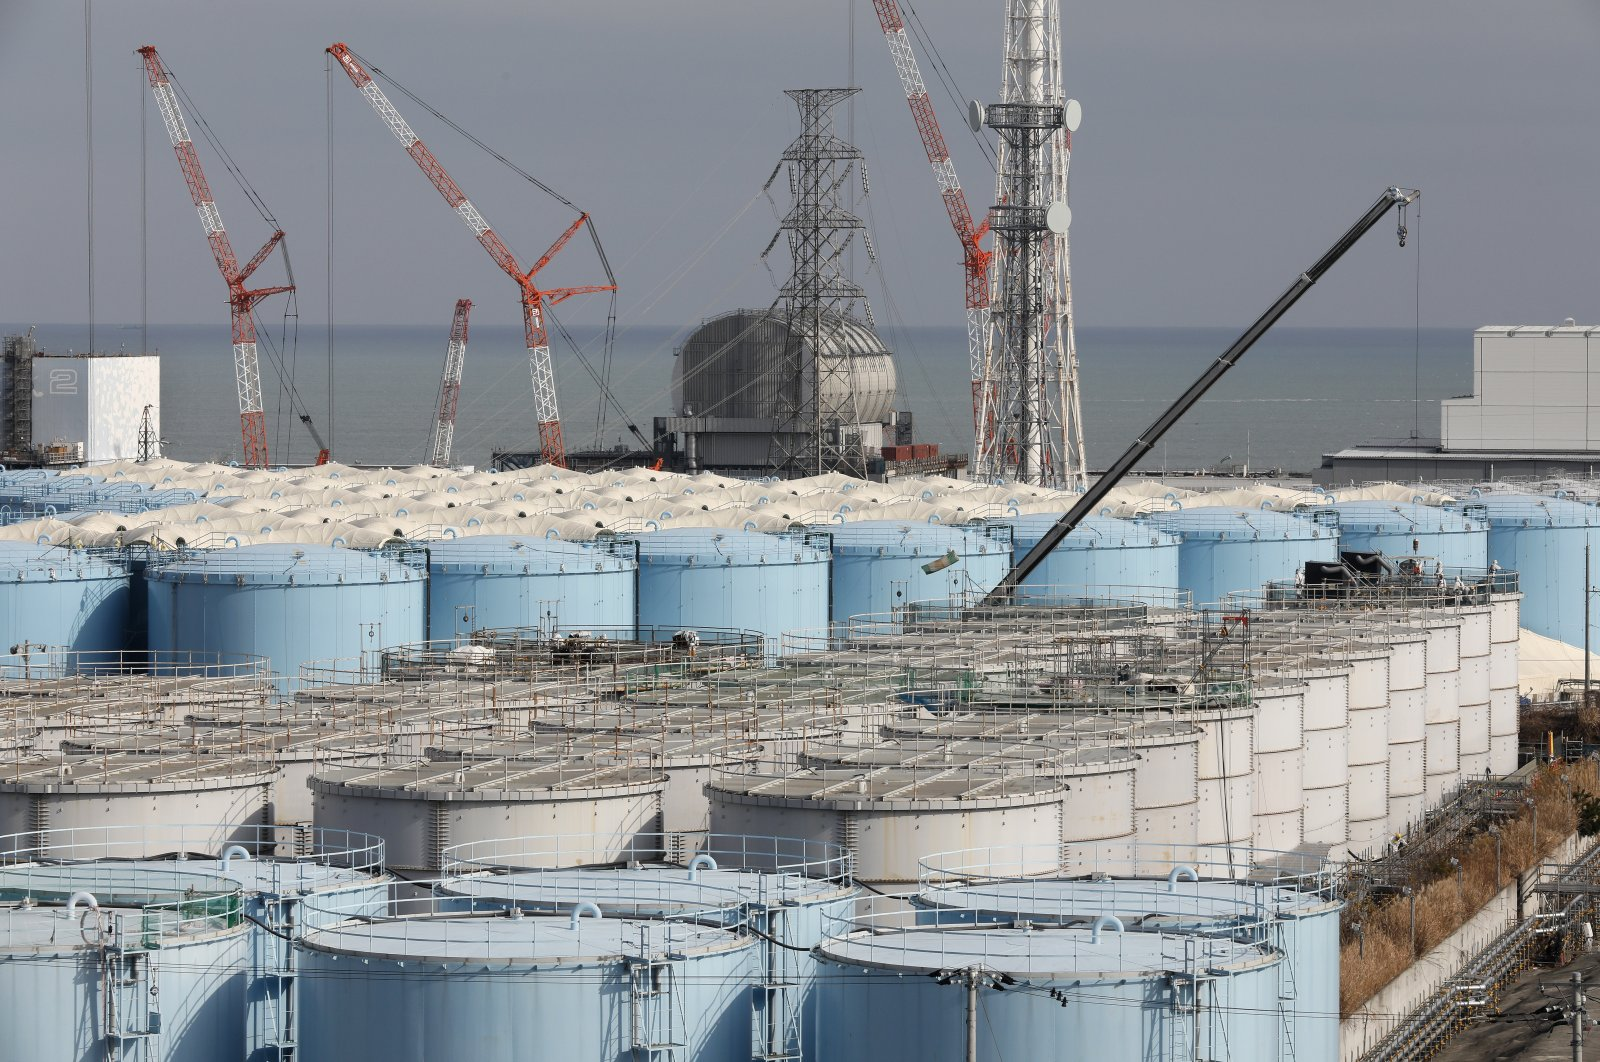 Workers demolish old storage tanks including water processed in ALPS (Multi-nuclide retrieval equipment) at the tsunami-devastated Tokyo Electric Power Company (TEPCO) Fukushima Daiichi Nuclear Power Plant in Okuma town, Fukushima Prefecture, Japan, Jan. 22, 2020. (EPA Photo)